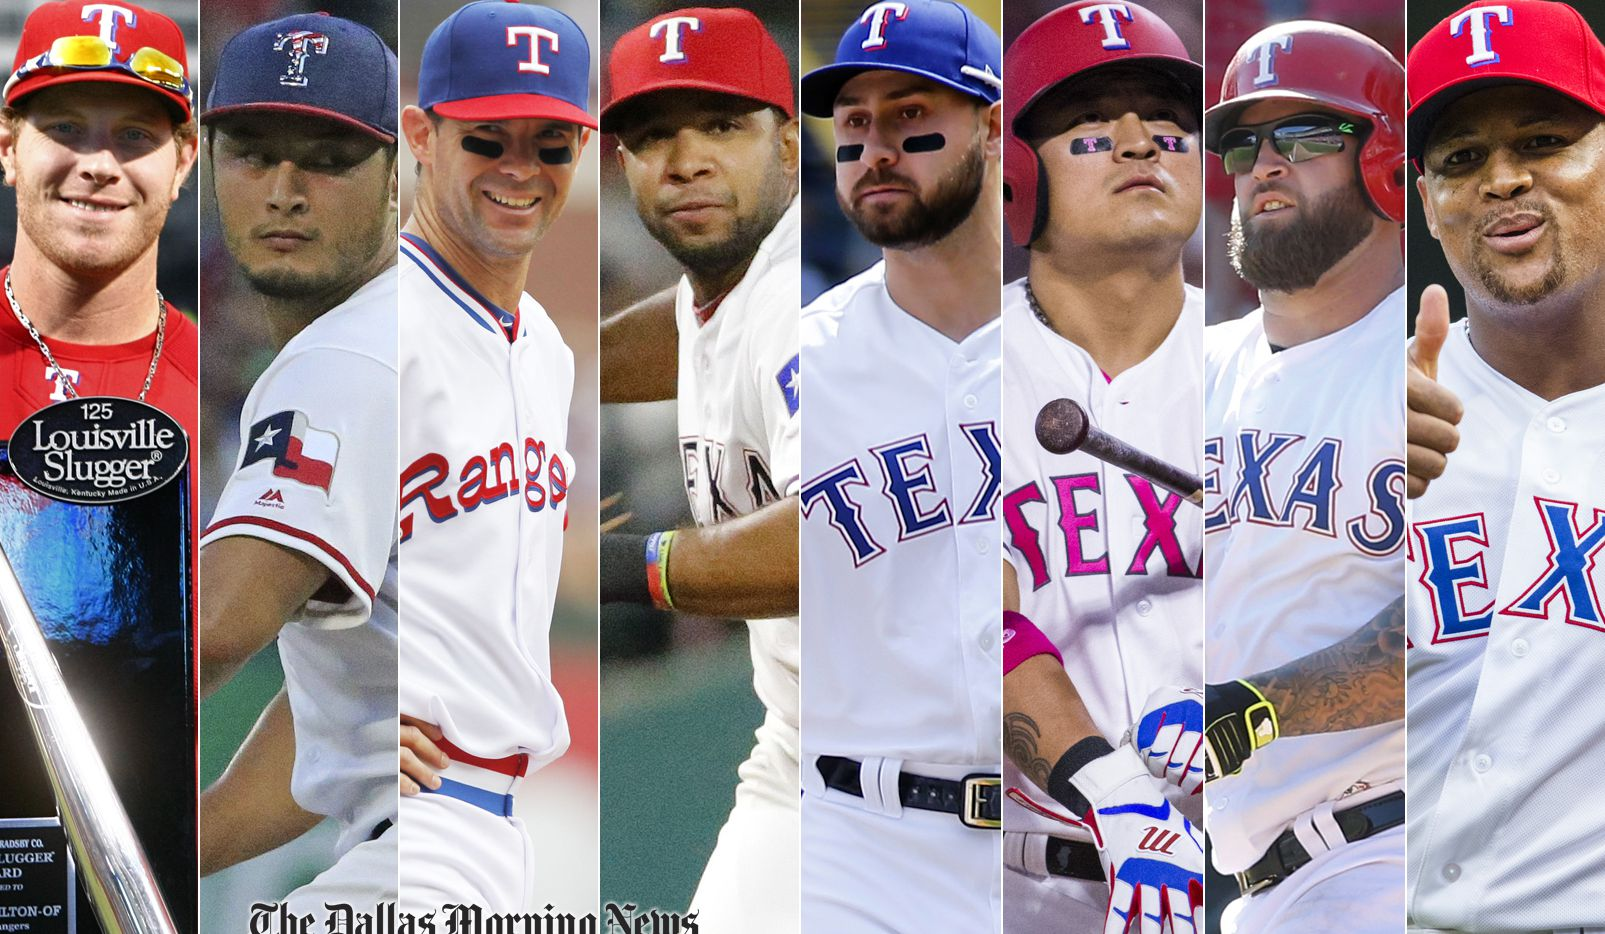 Members of The Dallas Morning News' all-decade team, from L to R: Josh Hamilton, Yu Darvish, Michael Young, Elvis Andrus, Joey Gallo, Shin-Soo Choo, Mike Napoli, Adrian Beltre